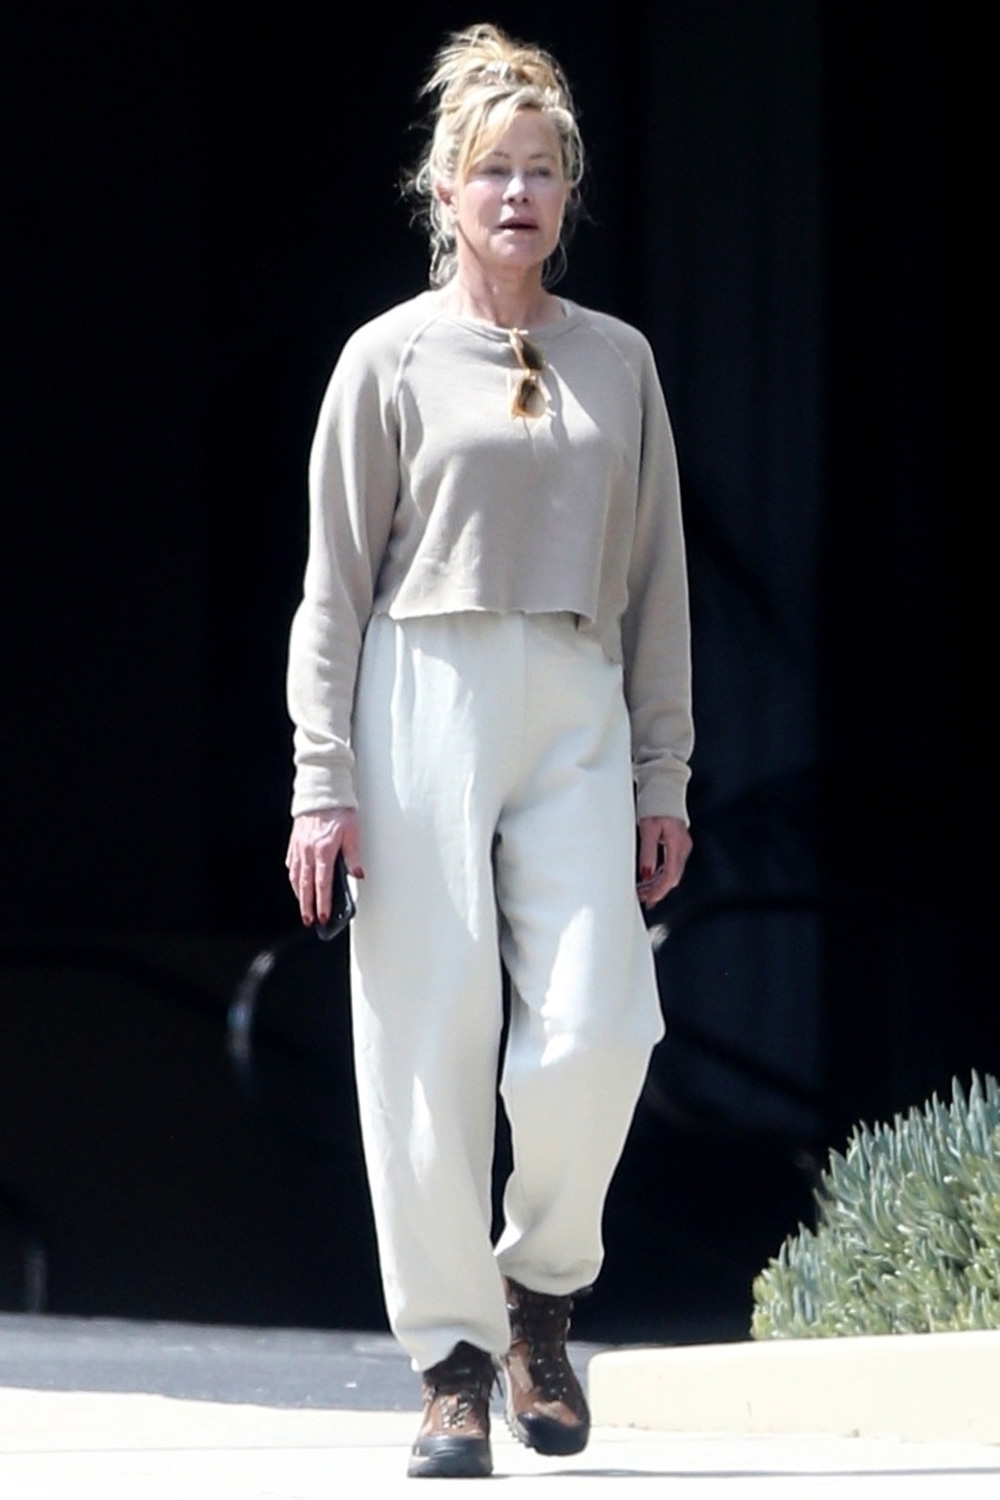 Melanie Griffith explores a new path for her daily walk